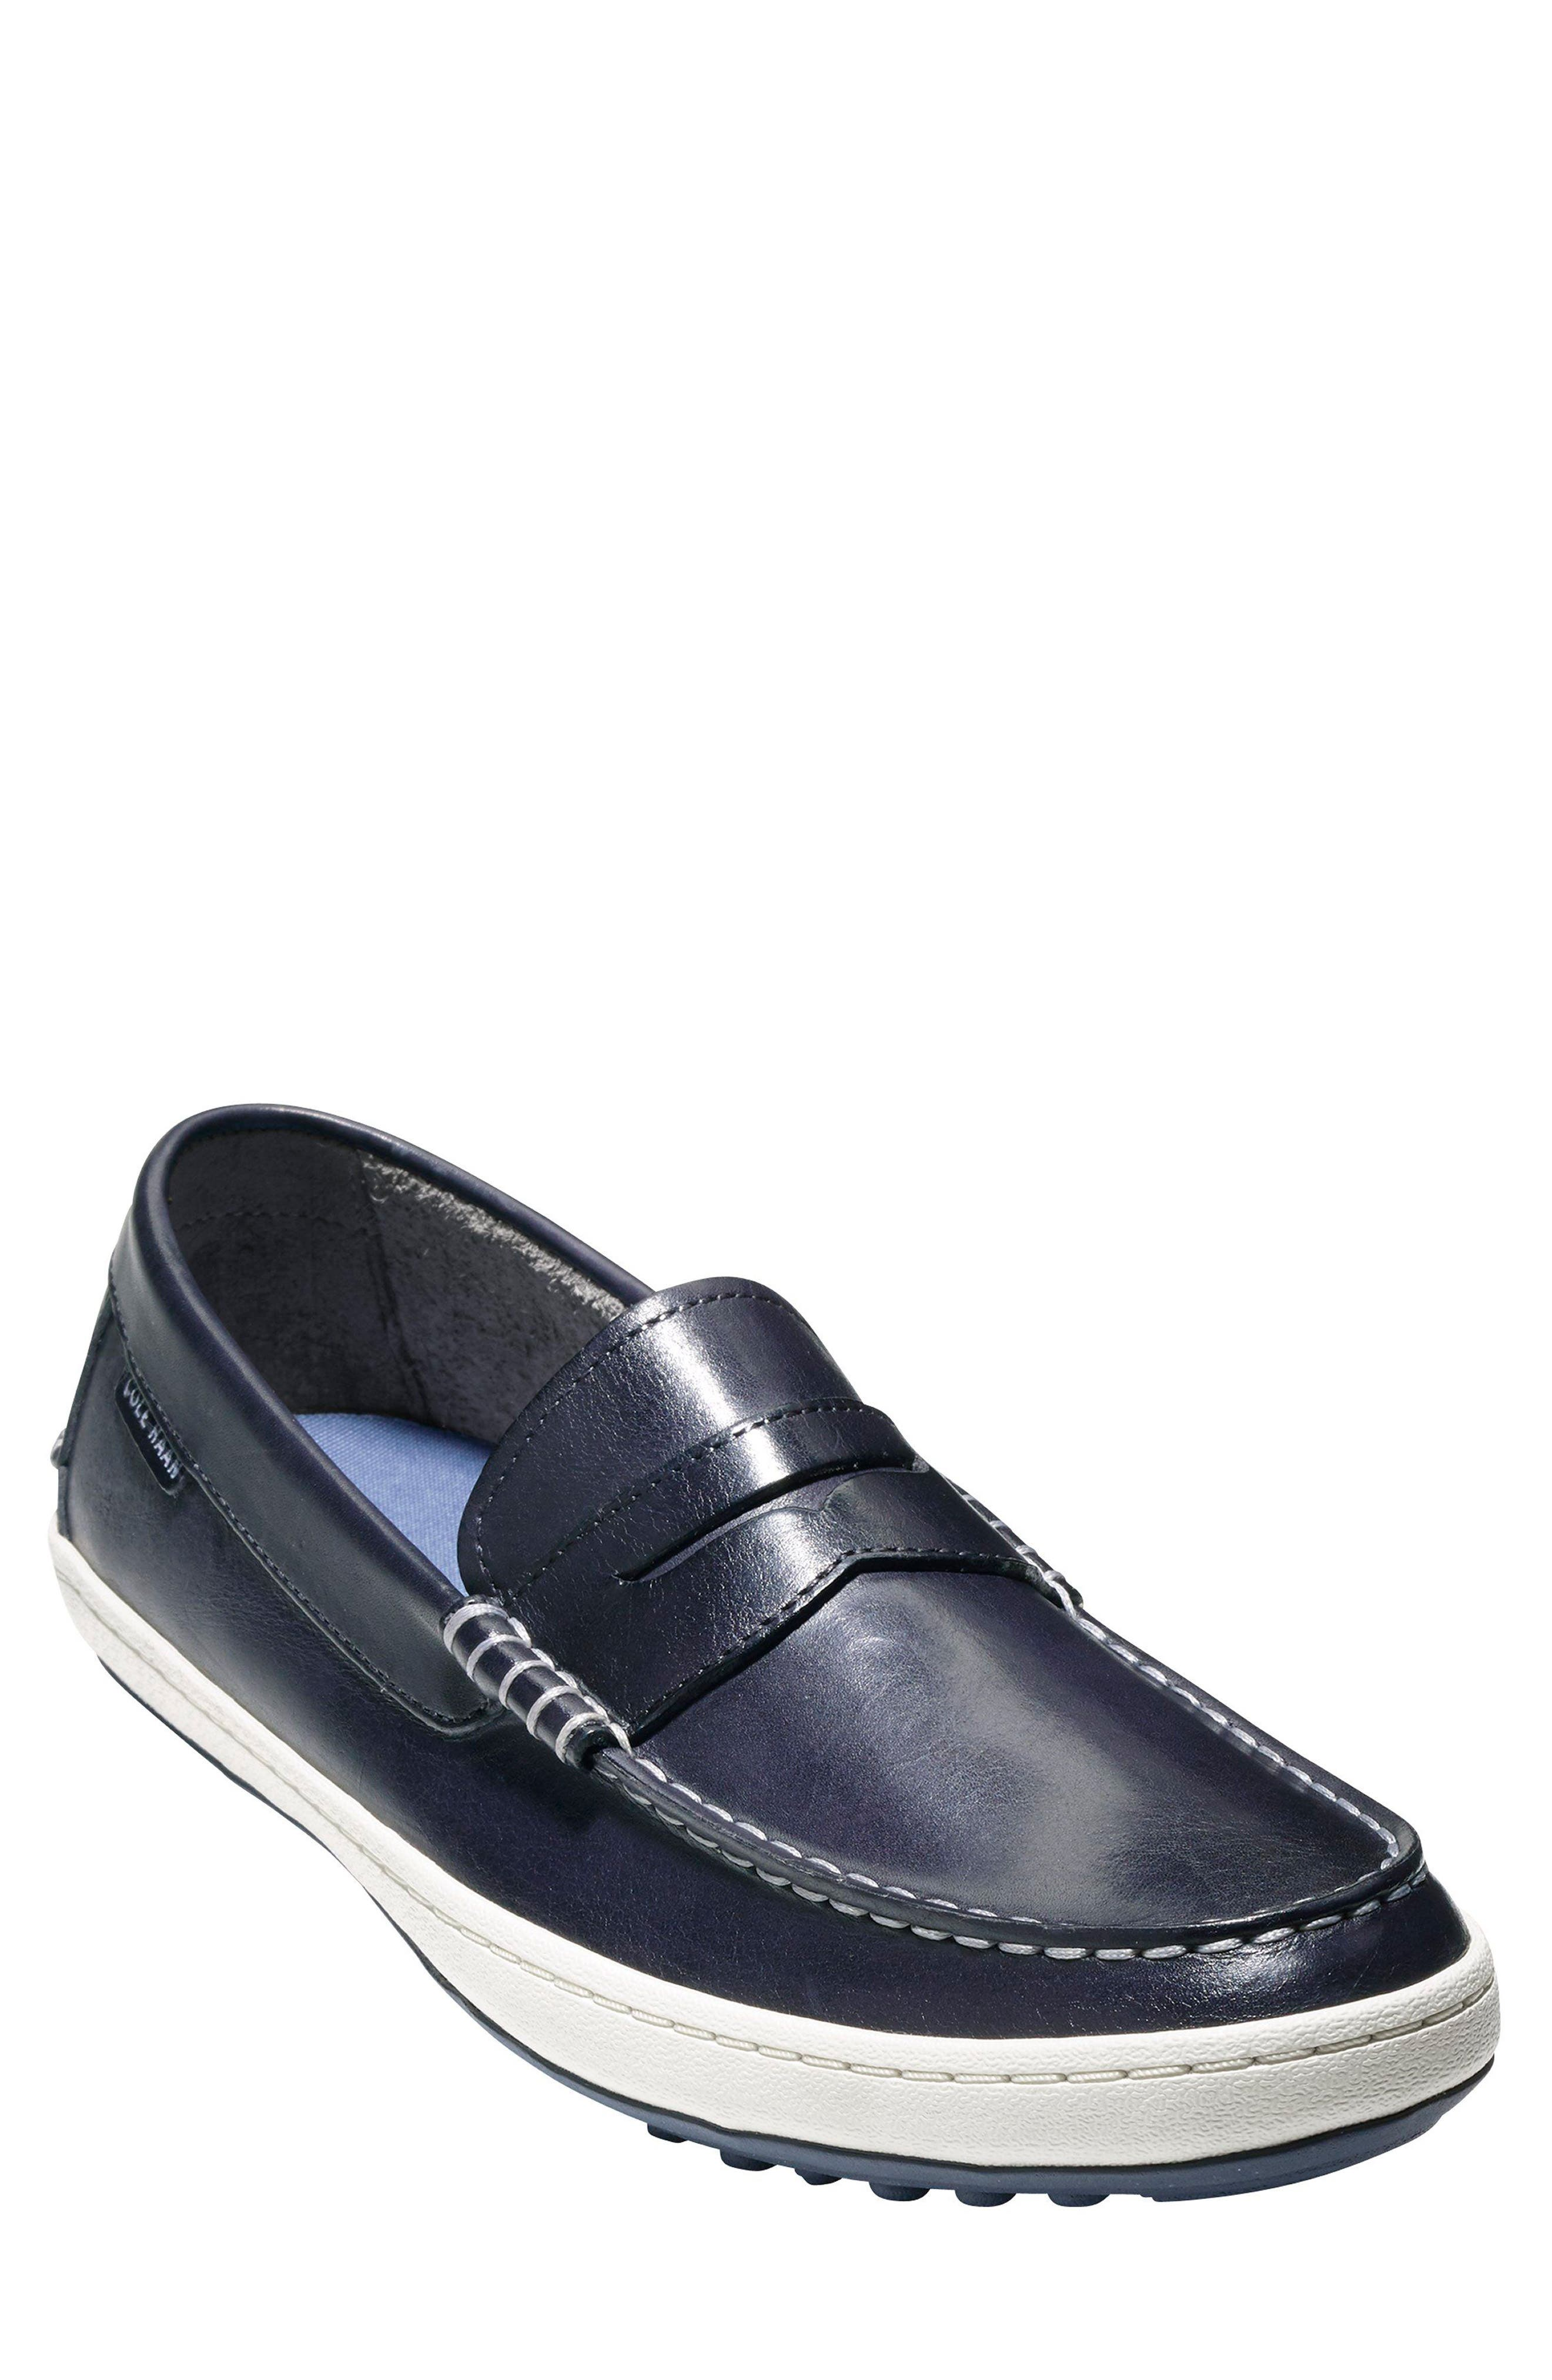 Alternate Image 1 Selected - Cole Haan 'Pinch Roadtrip' Penny Loafer (Men)